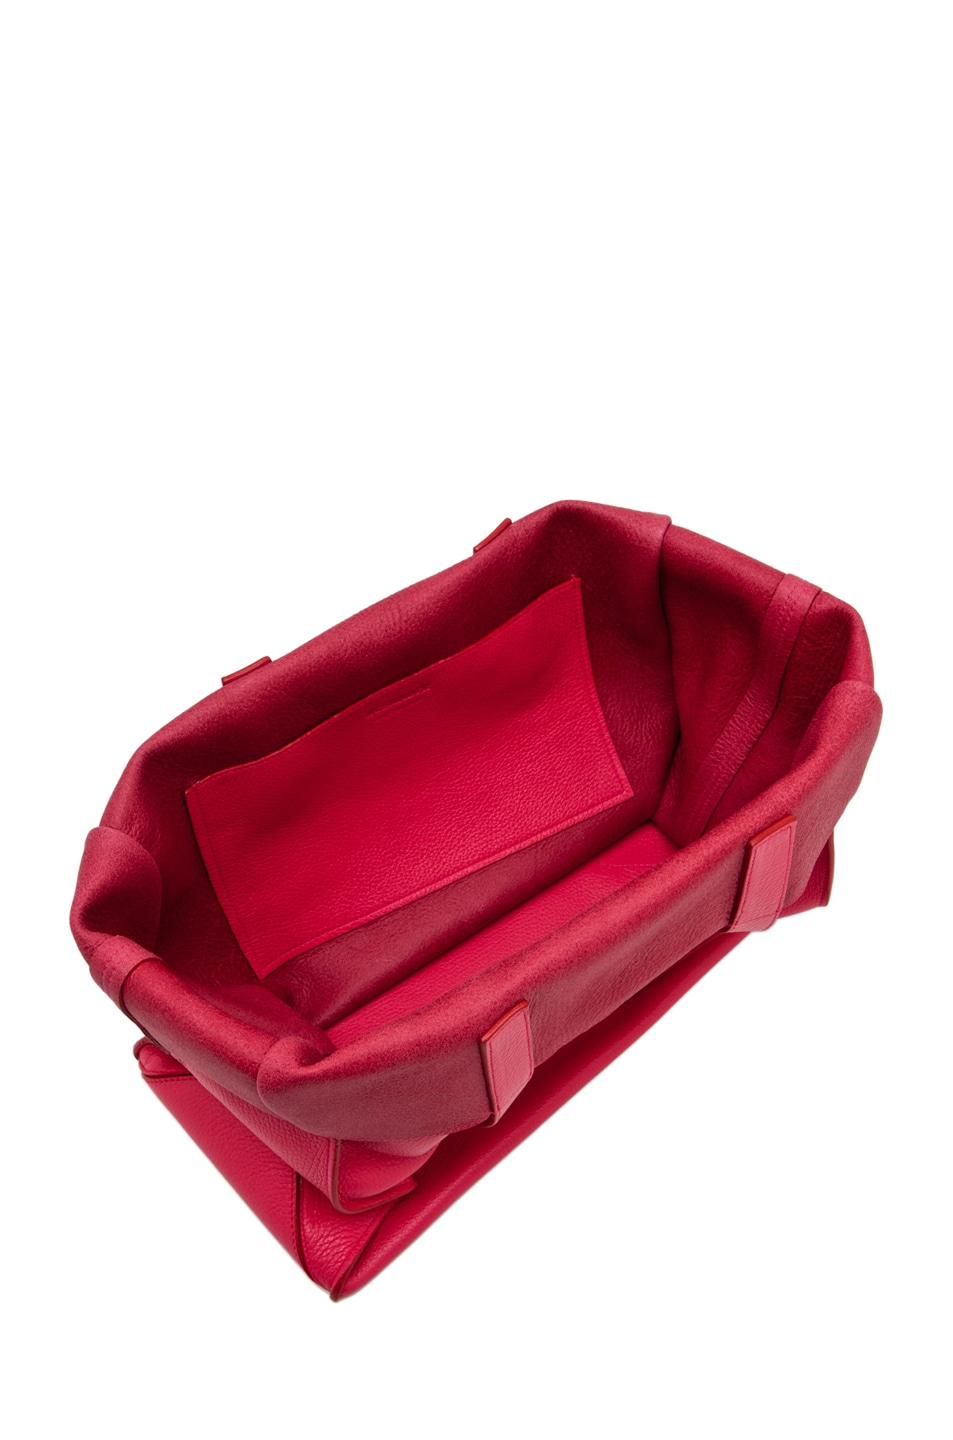 Image 4 of Jil Sander Paper Bag Tote in Lipstick